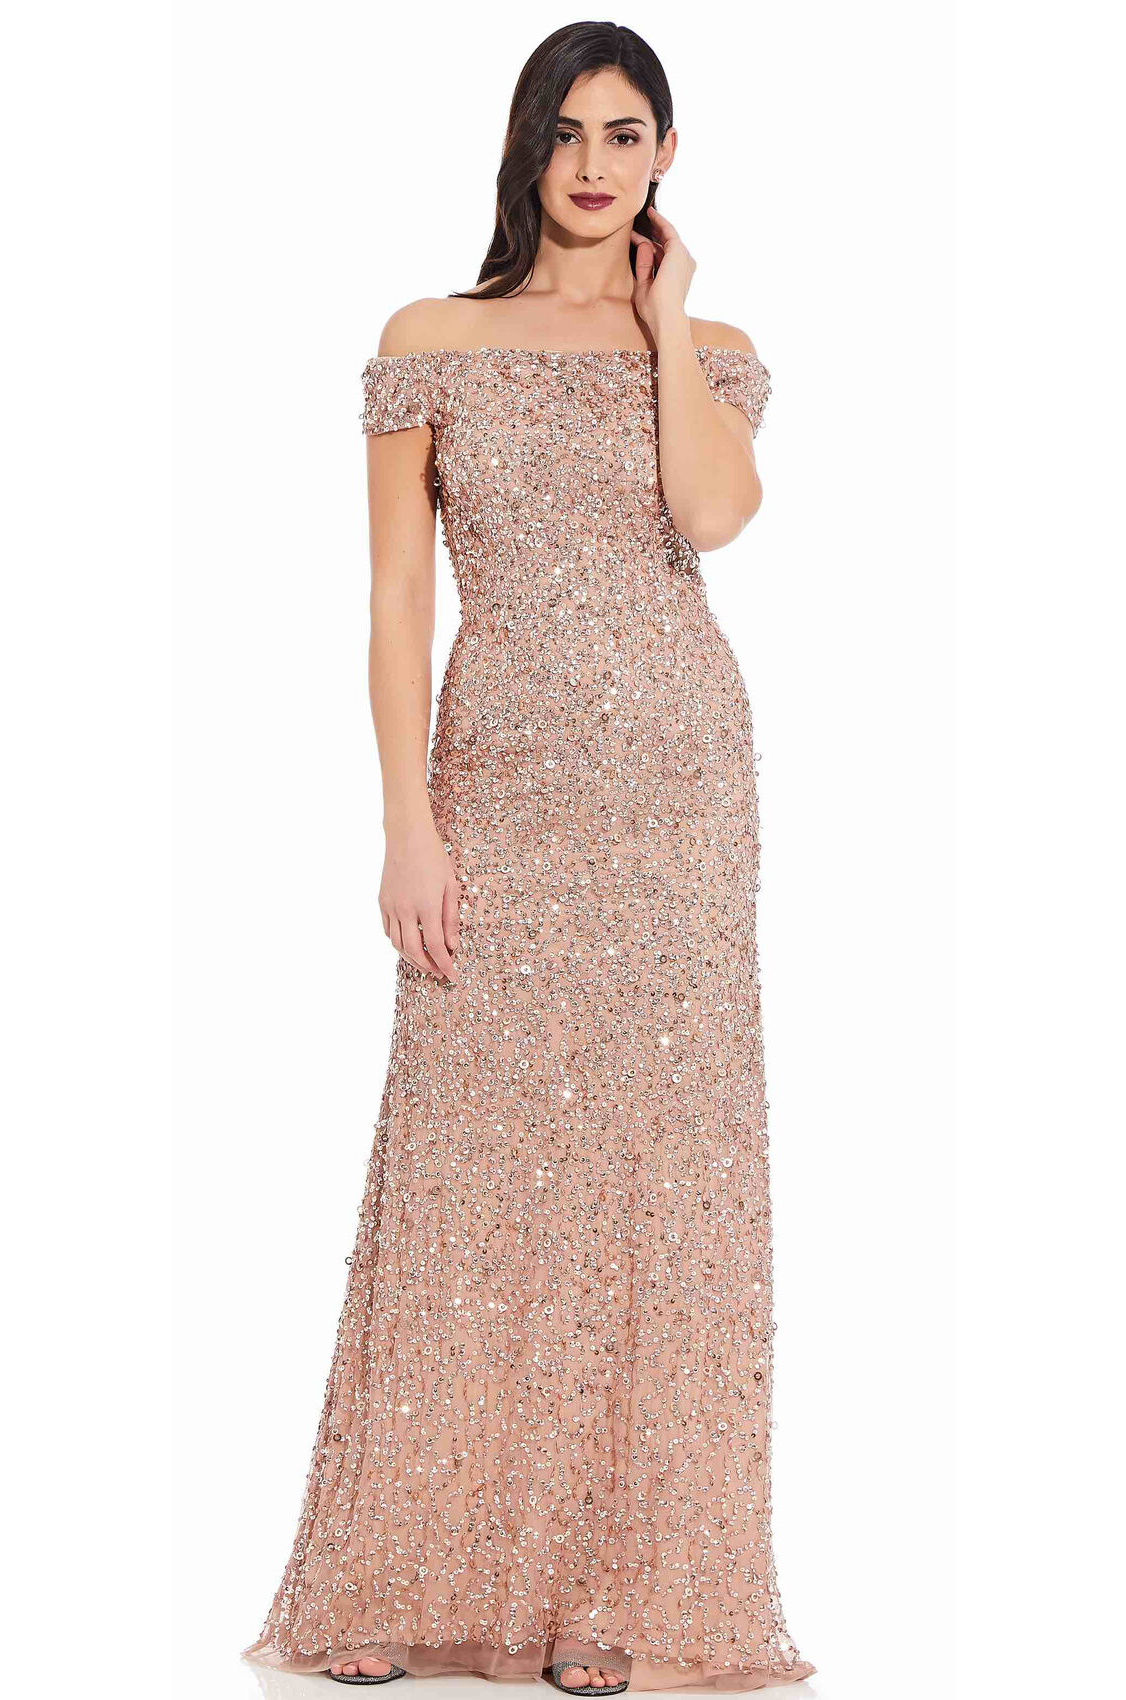 Lillian Off the Shoulder Sequin Beaded Gown By Adrianna Papell - Rose Gold